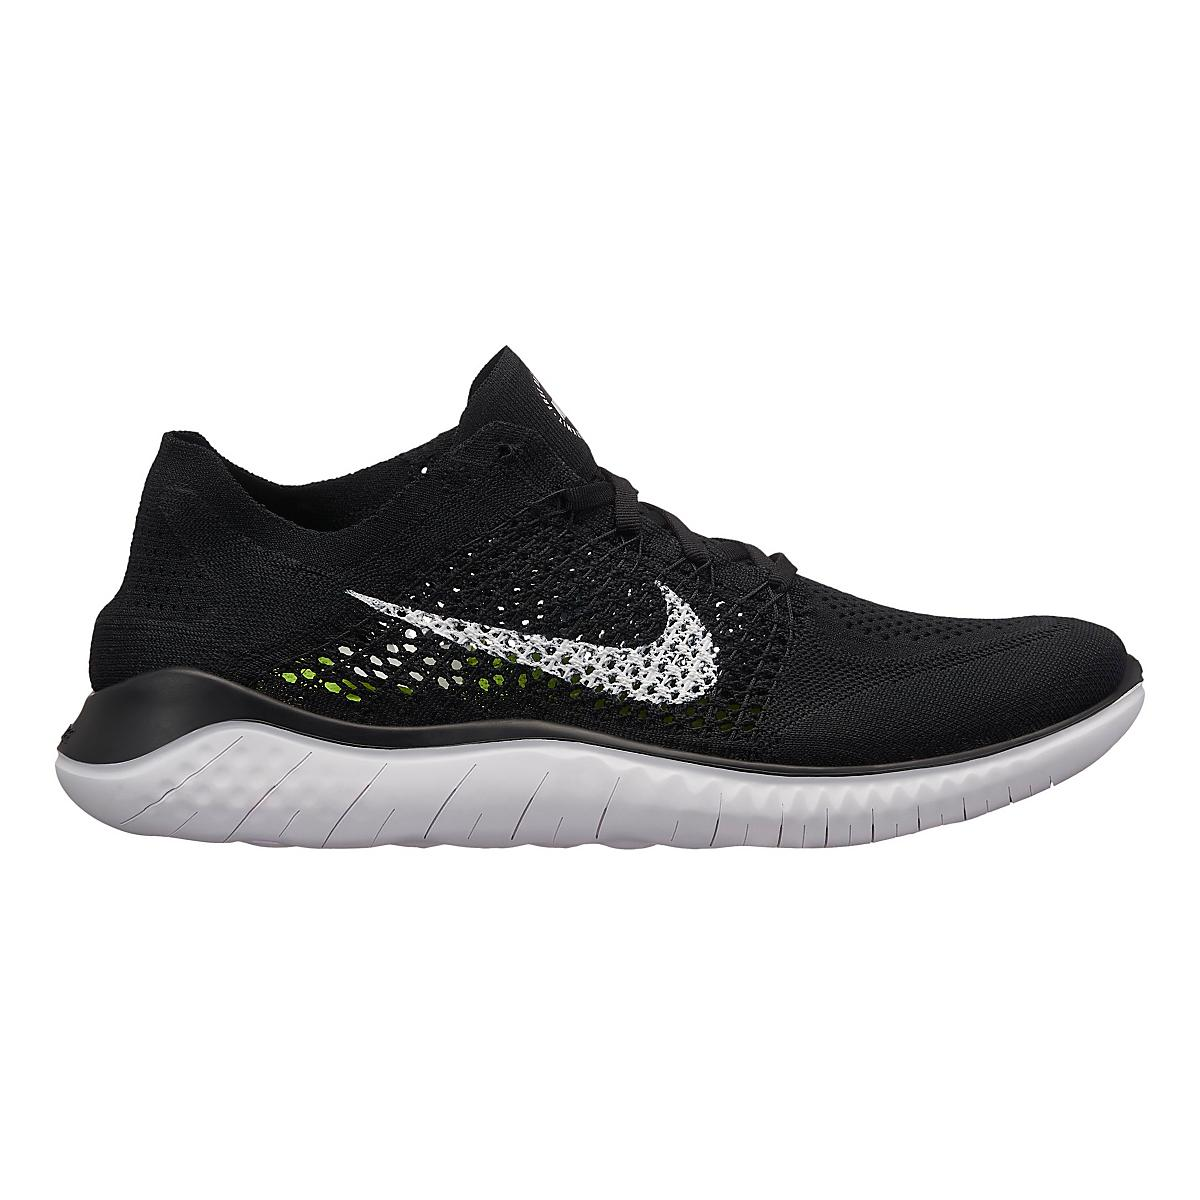 19b546db7d1 Nike Free RN Flyknit 2018 Running Shoes from Road Runner Sports